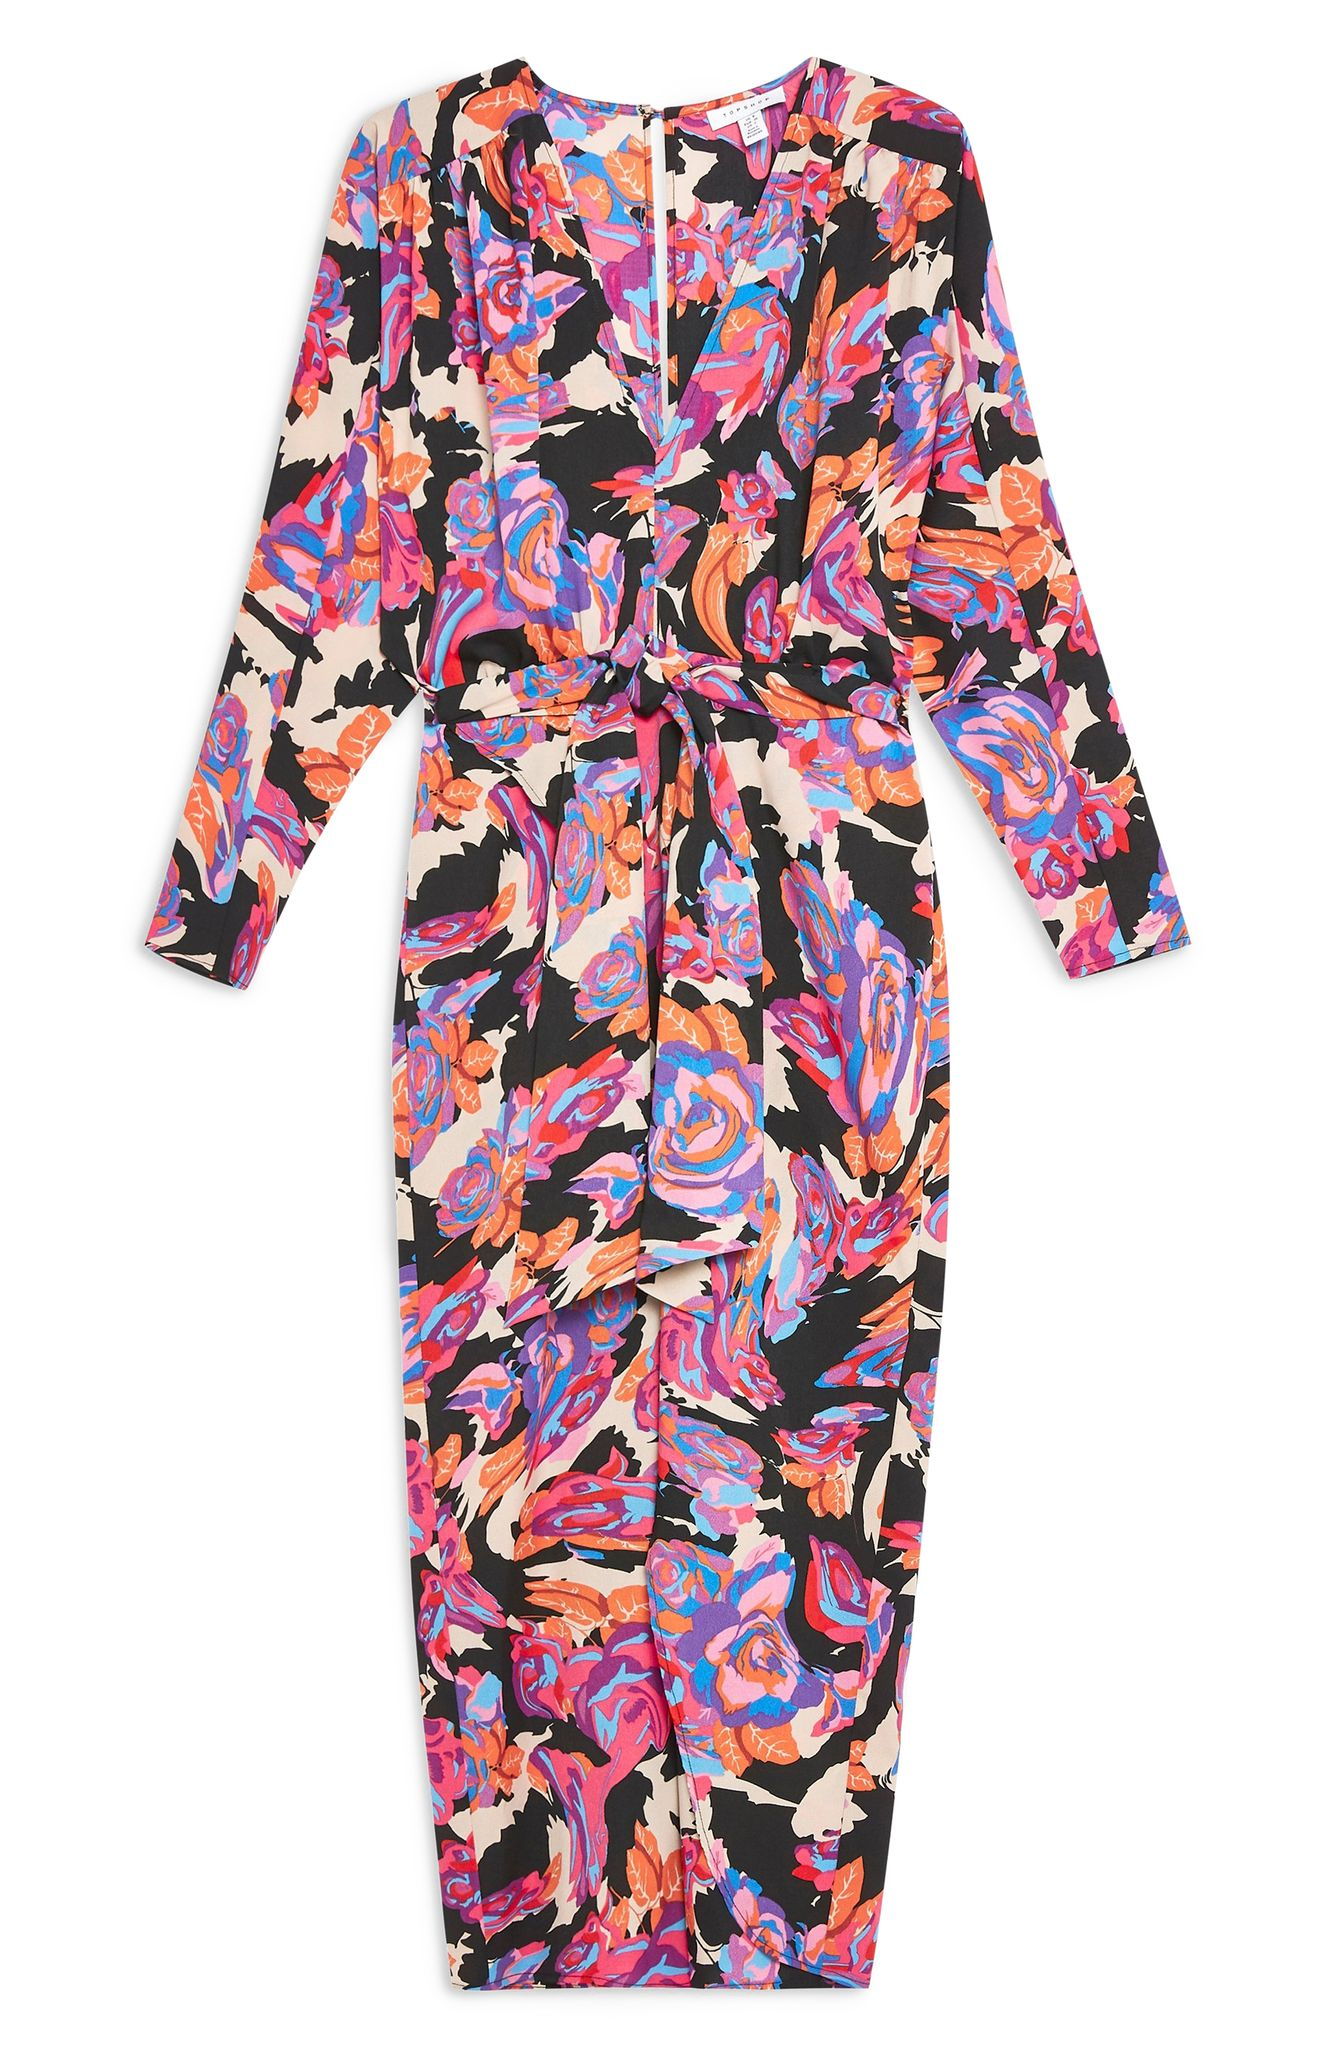 Topshop Distorted Floral Dress (normally $95): NOW $62.90 (Image: Nordstrom)